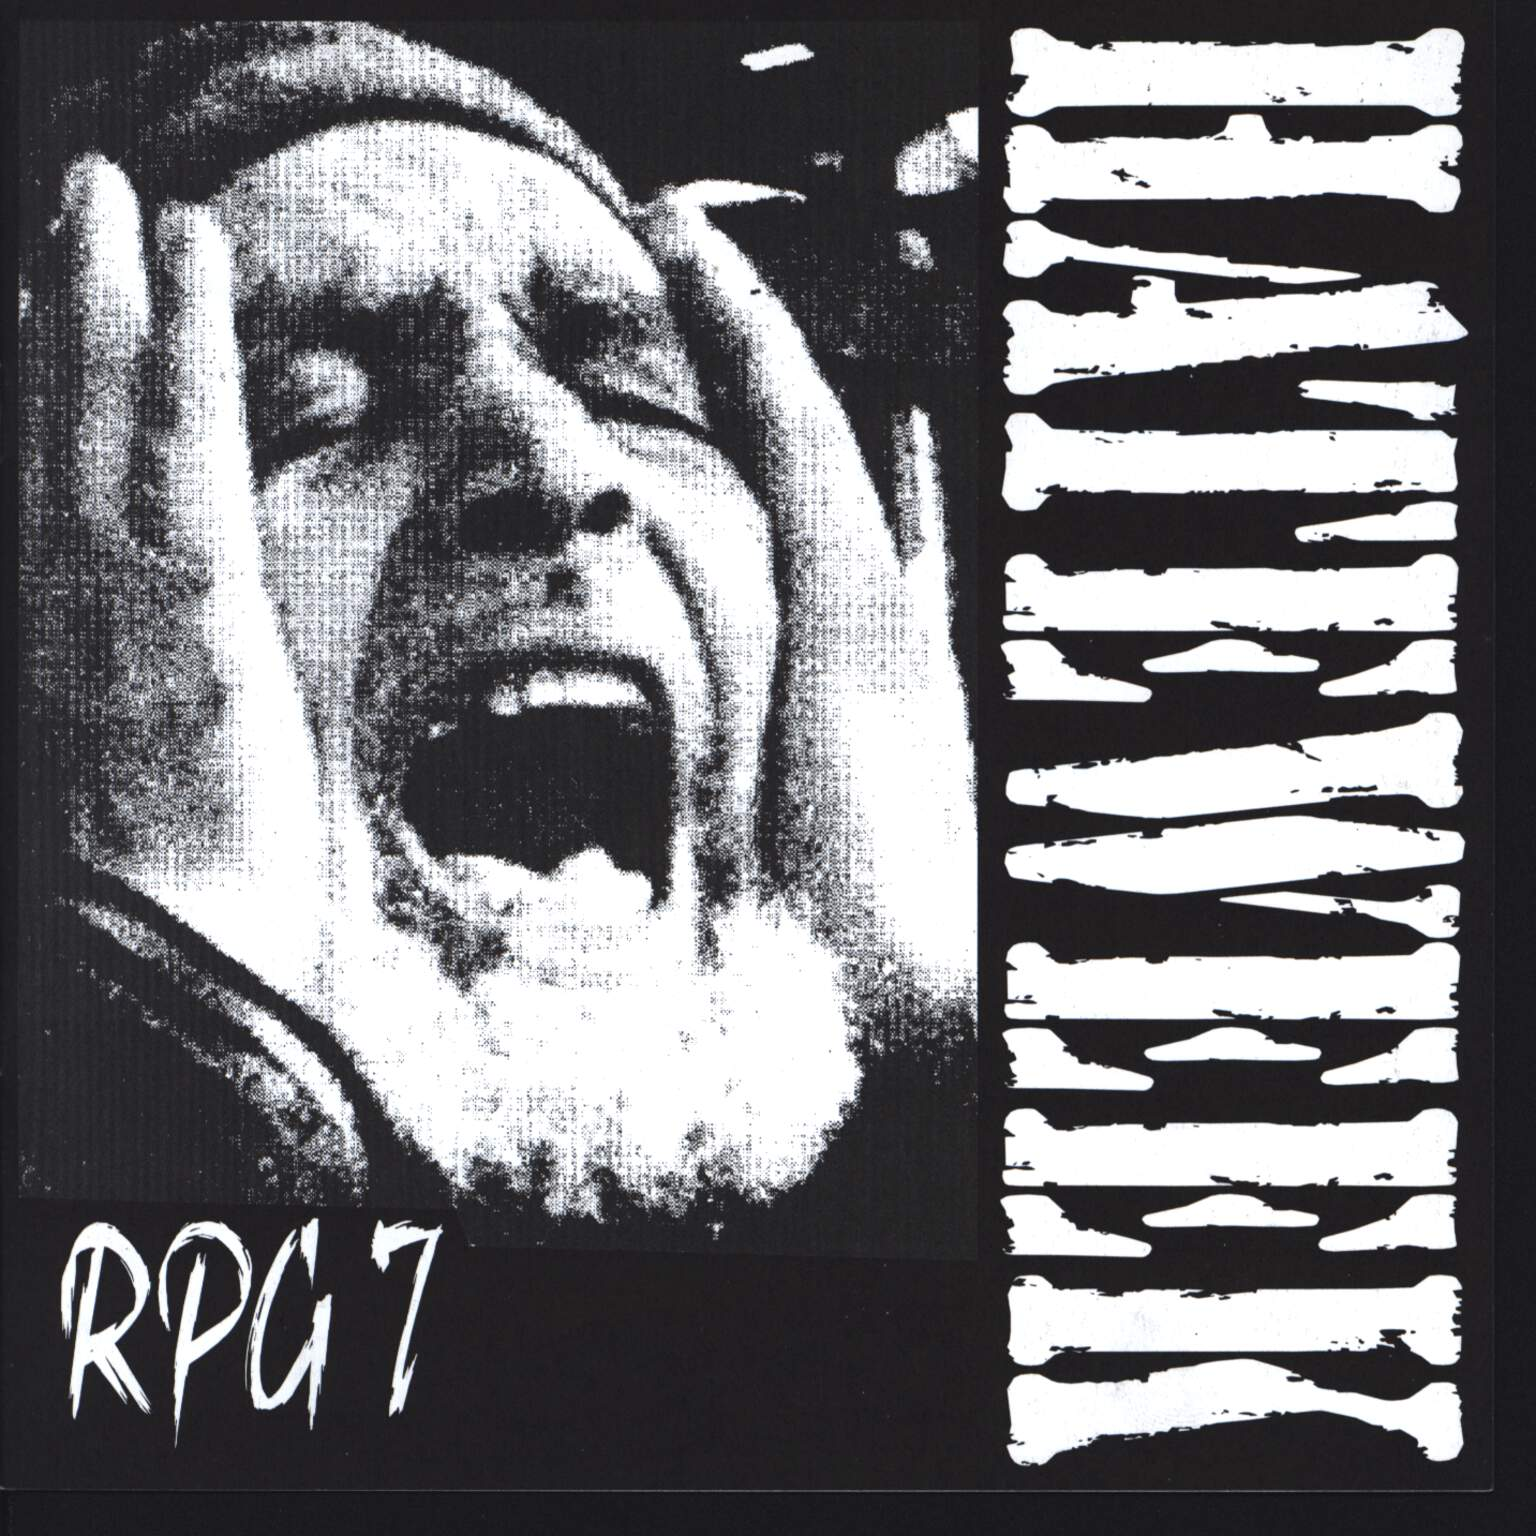 "RPG 7: Hateweek, 7"" Single (Vinyl)"